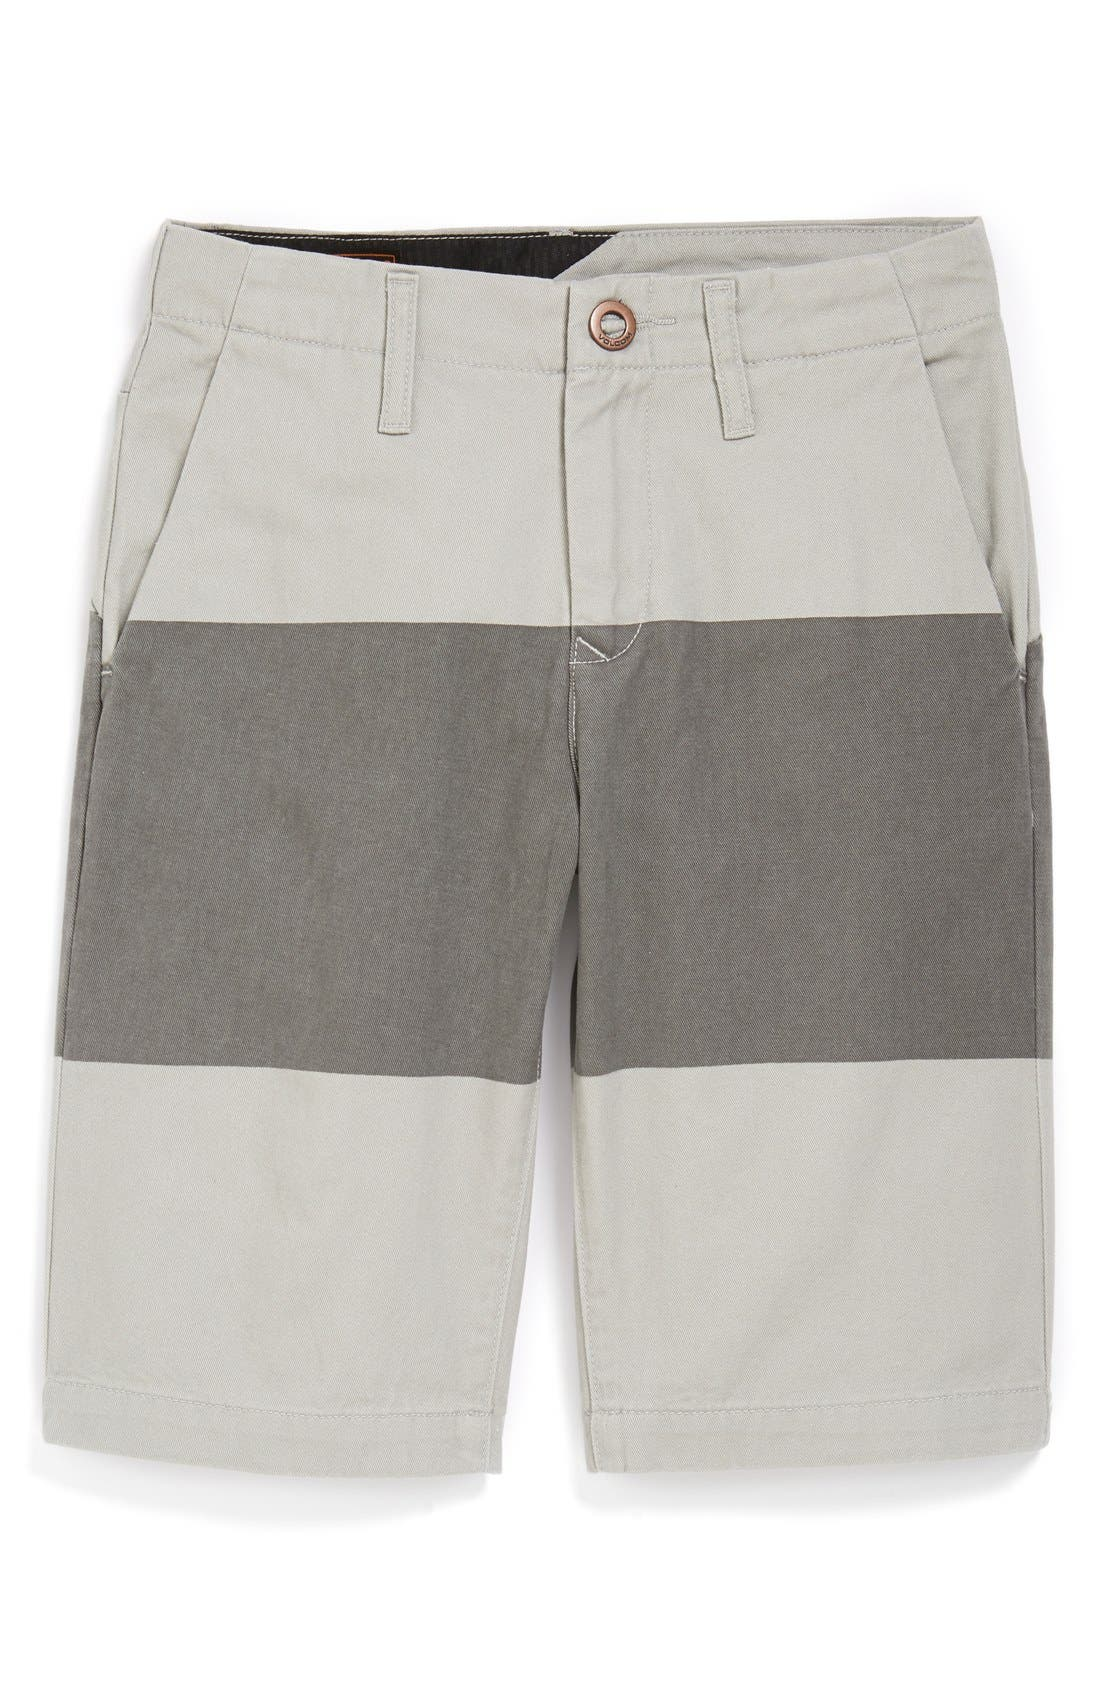 Alternate Image 1 Selected - Volcom Stripe Chino Shorts (Big Boys)